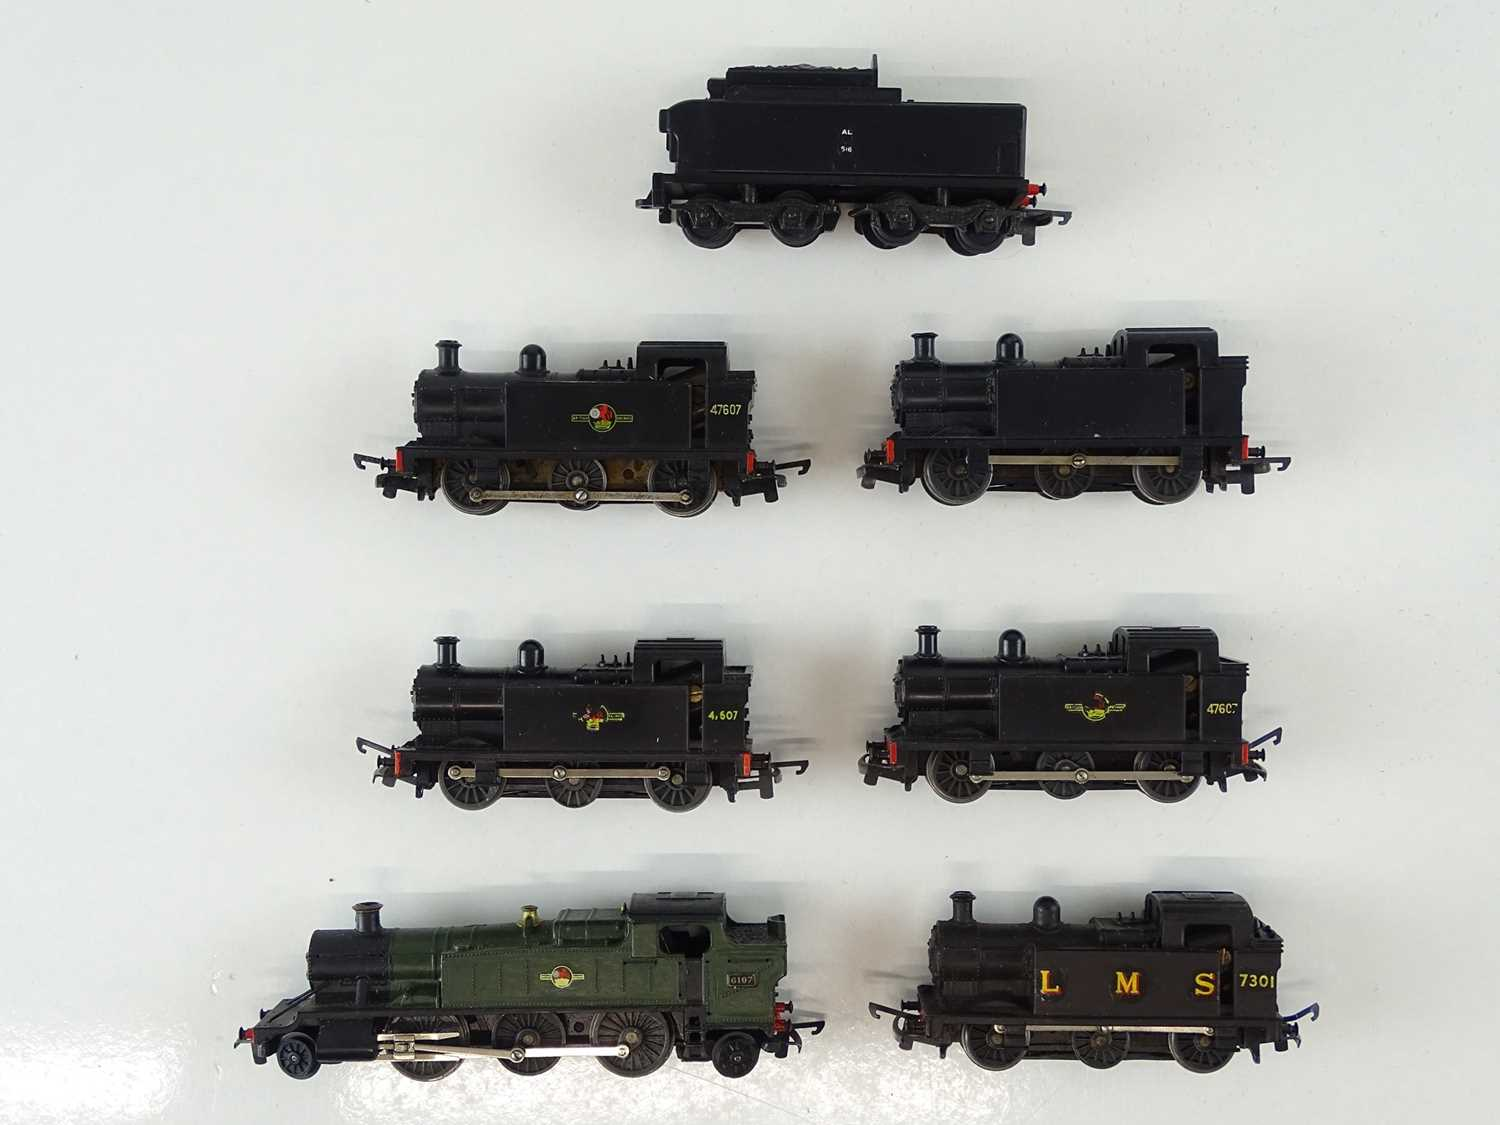 A group of TRI-ANG TT Gauge steam locos comprising 5 x 0-6-0 tanks, a Prairie and a tender for a